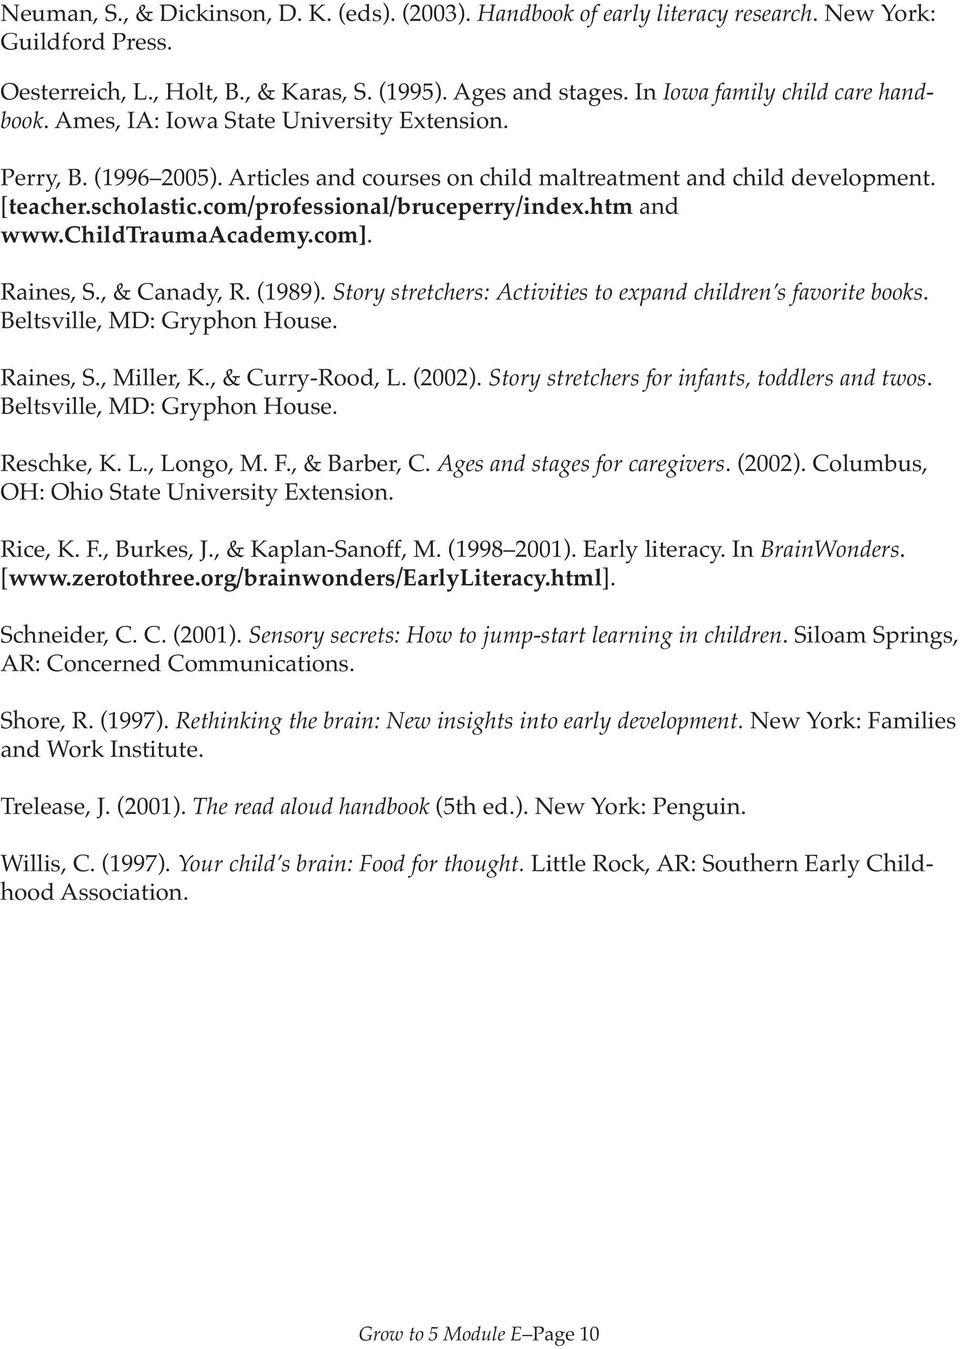 com/professional/bruceperry/index.htm and www.childtraumaacademy.com]. Raines, S., & Canady, R. (1989). Story stretchers: Activities to expand children s favorite books. Beltsville, MD: Gryphon House.